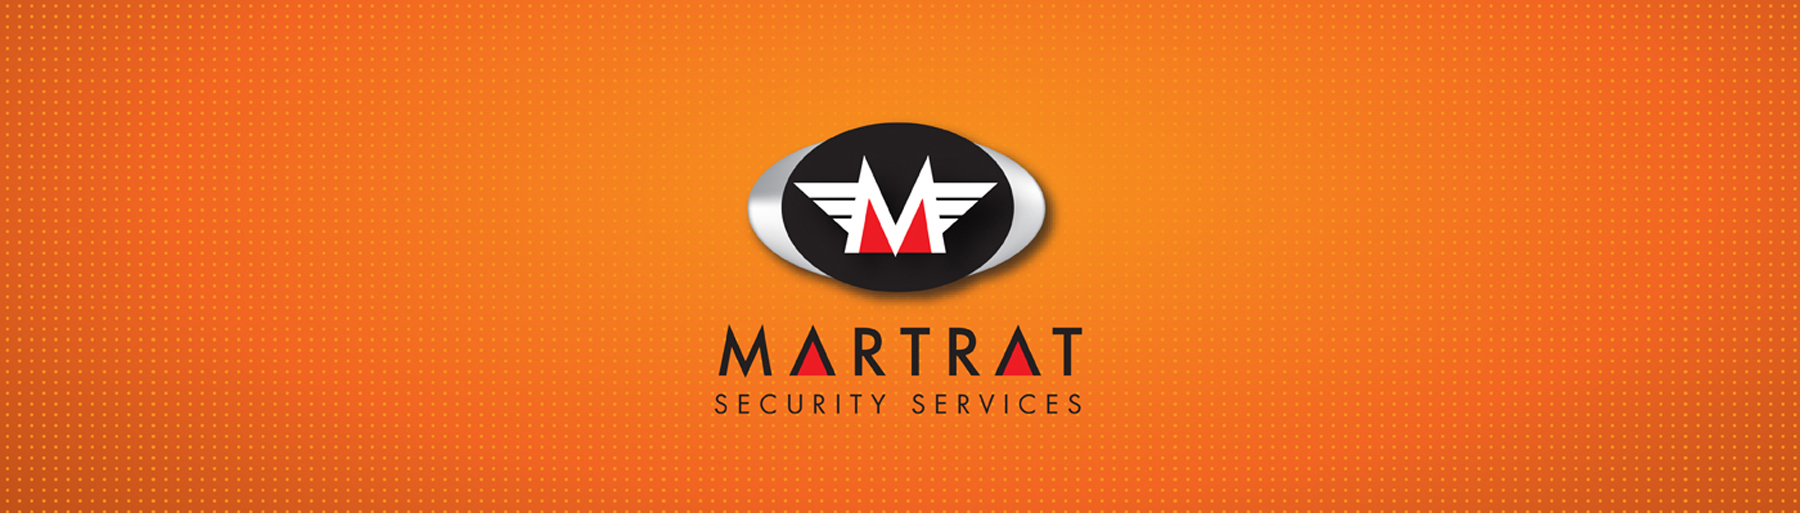 Martrat Logo on orange geometrical background wallpaper